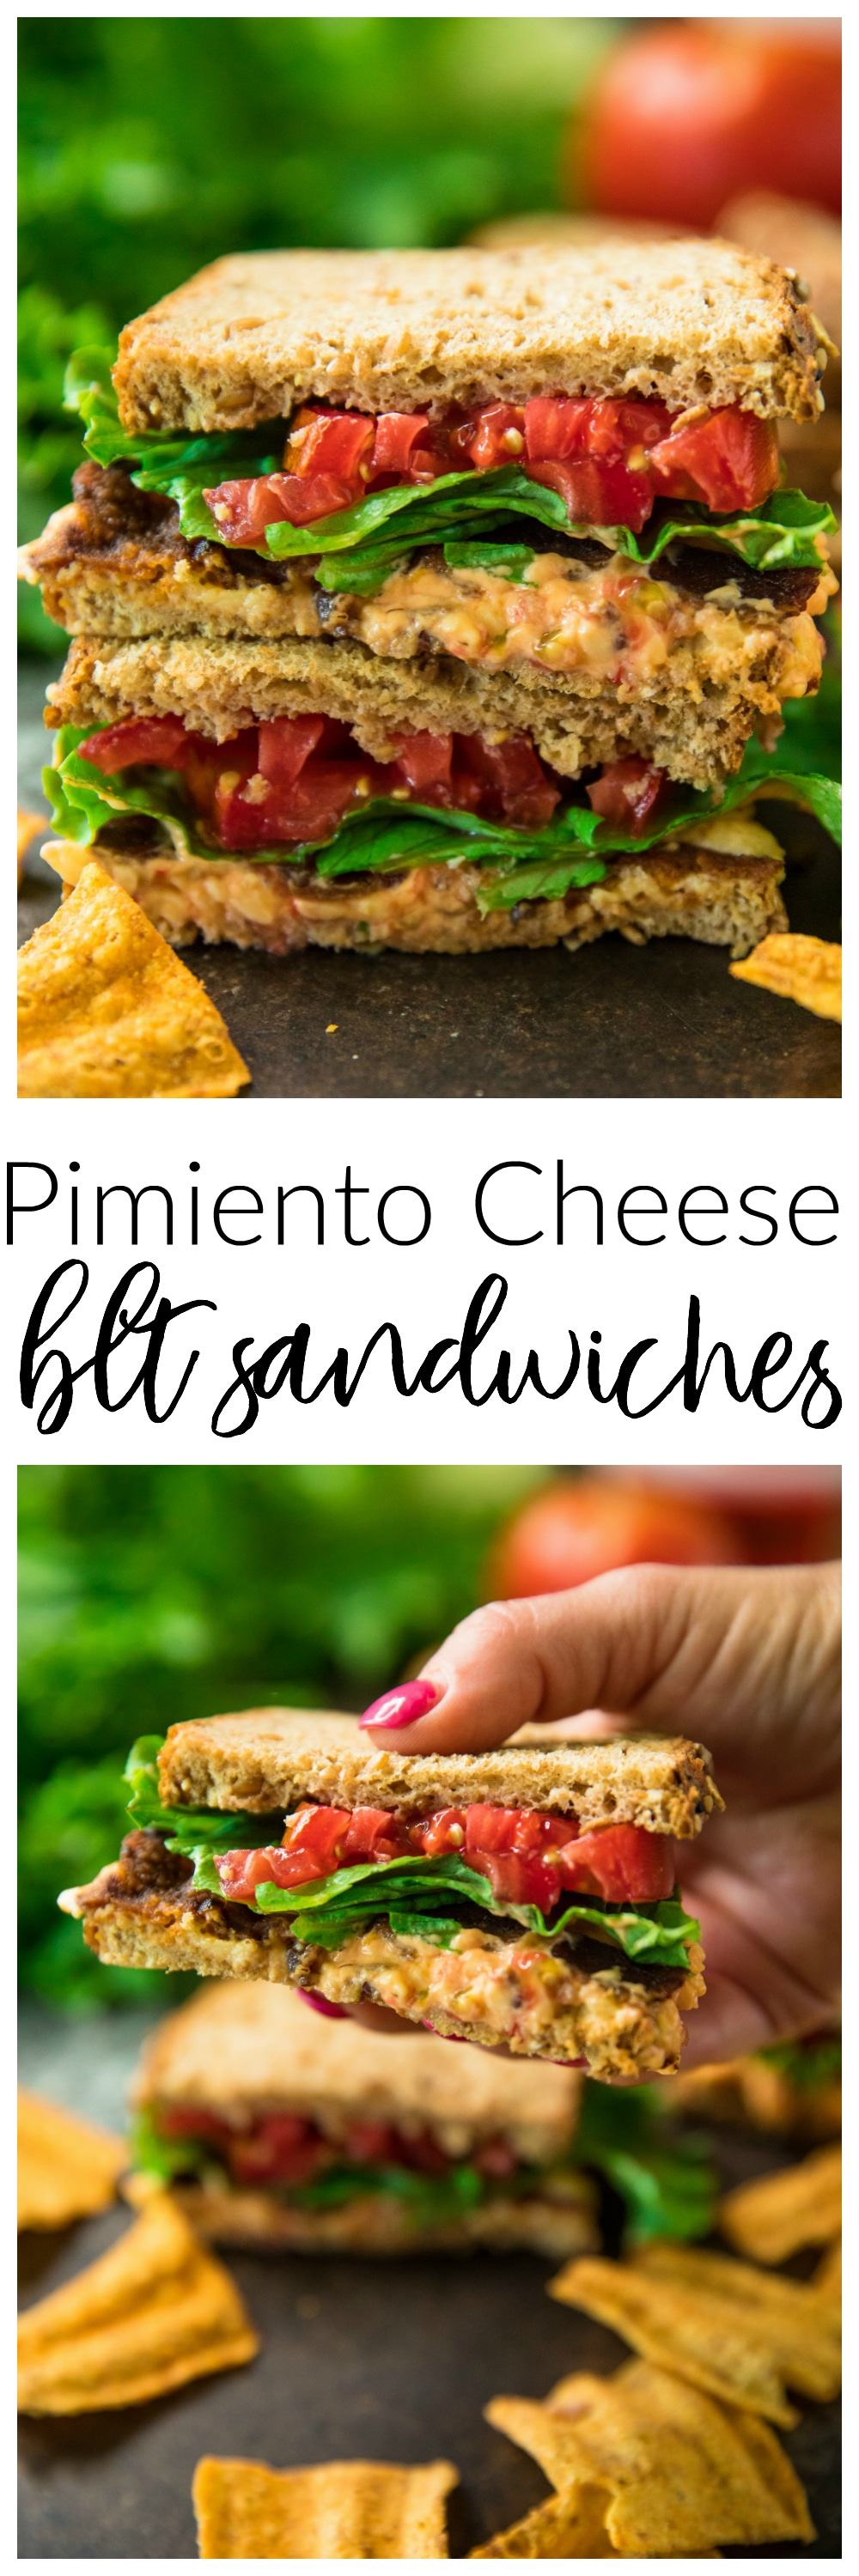 5-Ingredient pimiento cheese BLT sandwiches are crisp, fresh, flavorful, and so delicious. If you love sandwiches, this is a must try!